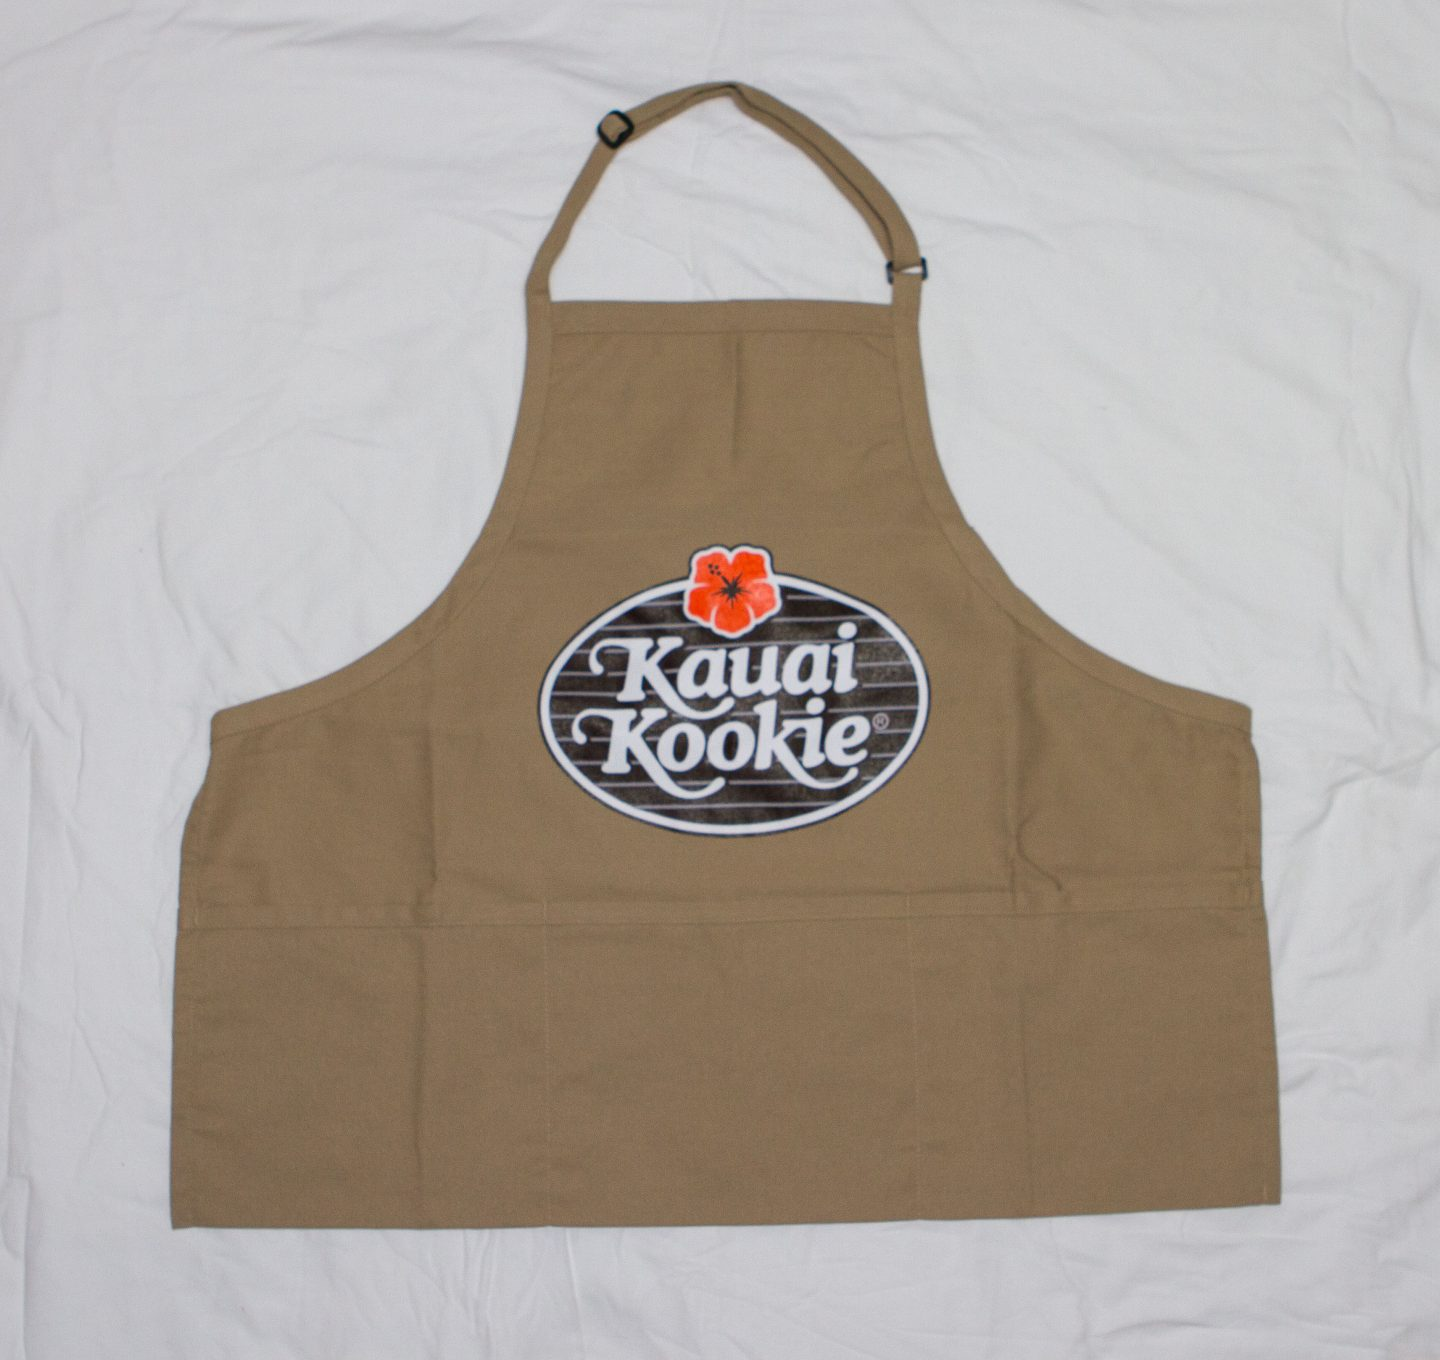 Kauai Kookie Kitchen Apron